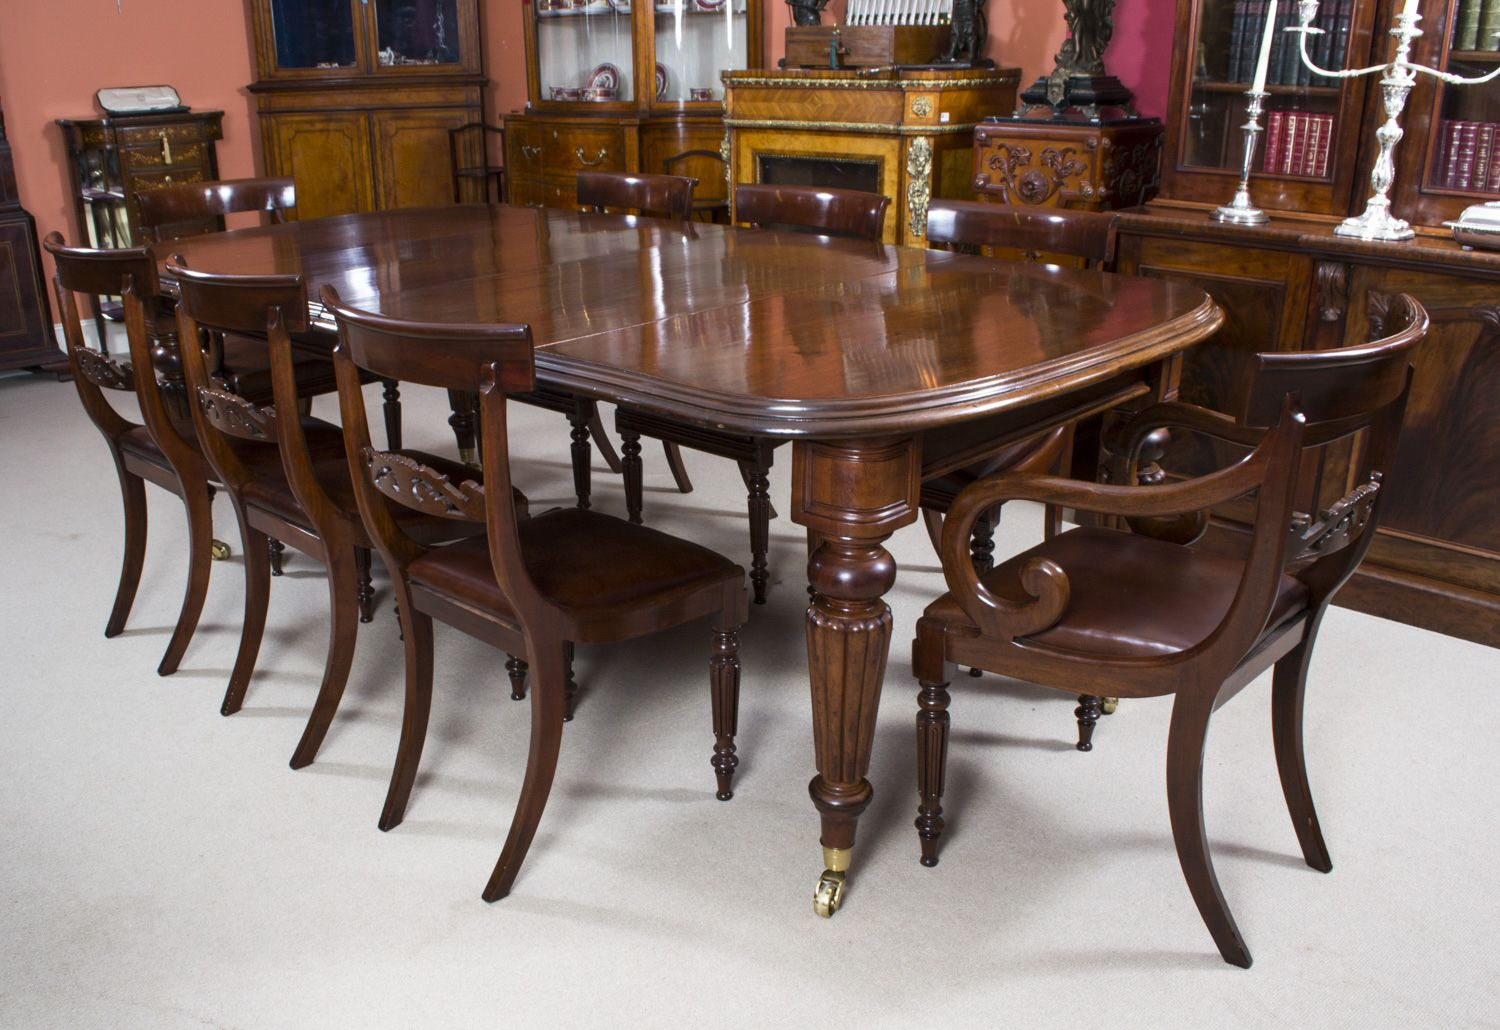 A Beautiful Antique Dining Table And Chair Set Just In Time For